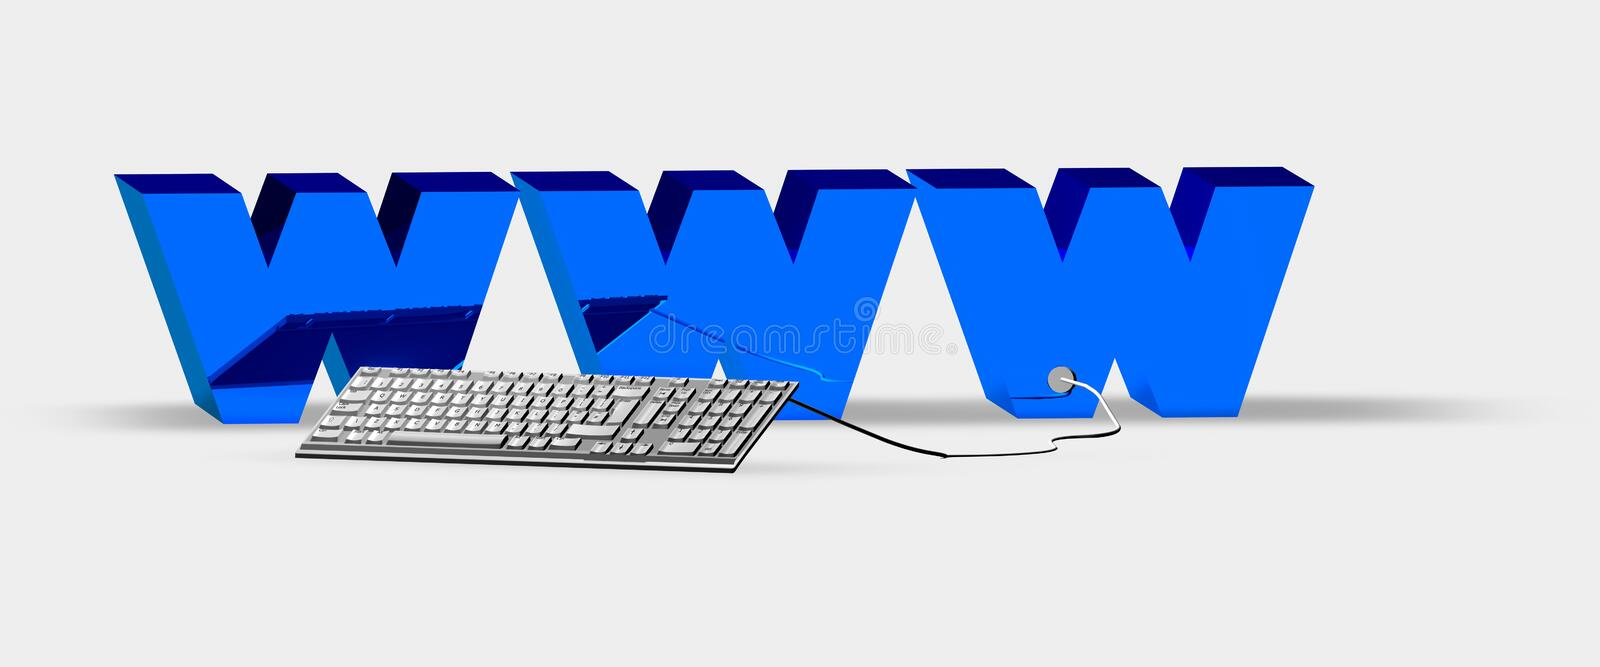 Concept of a computer keyboard connected with Web vector illustration